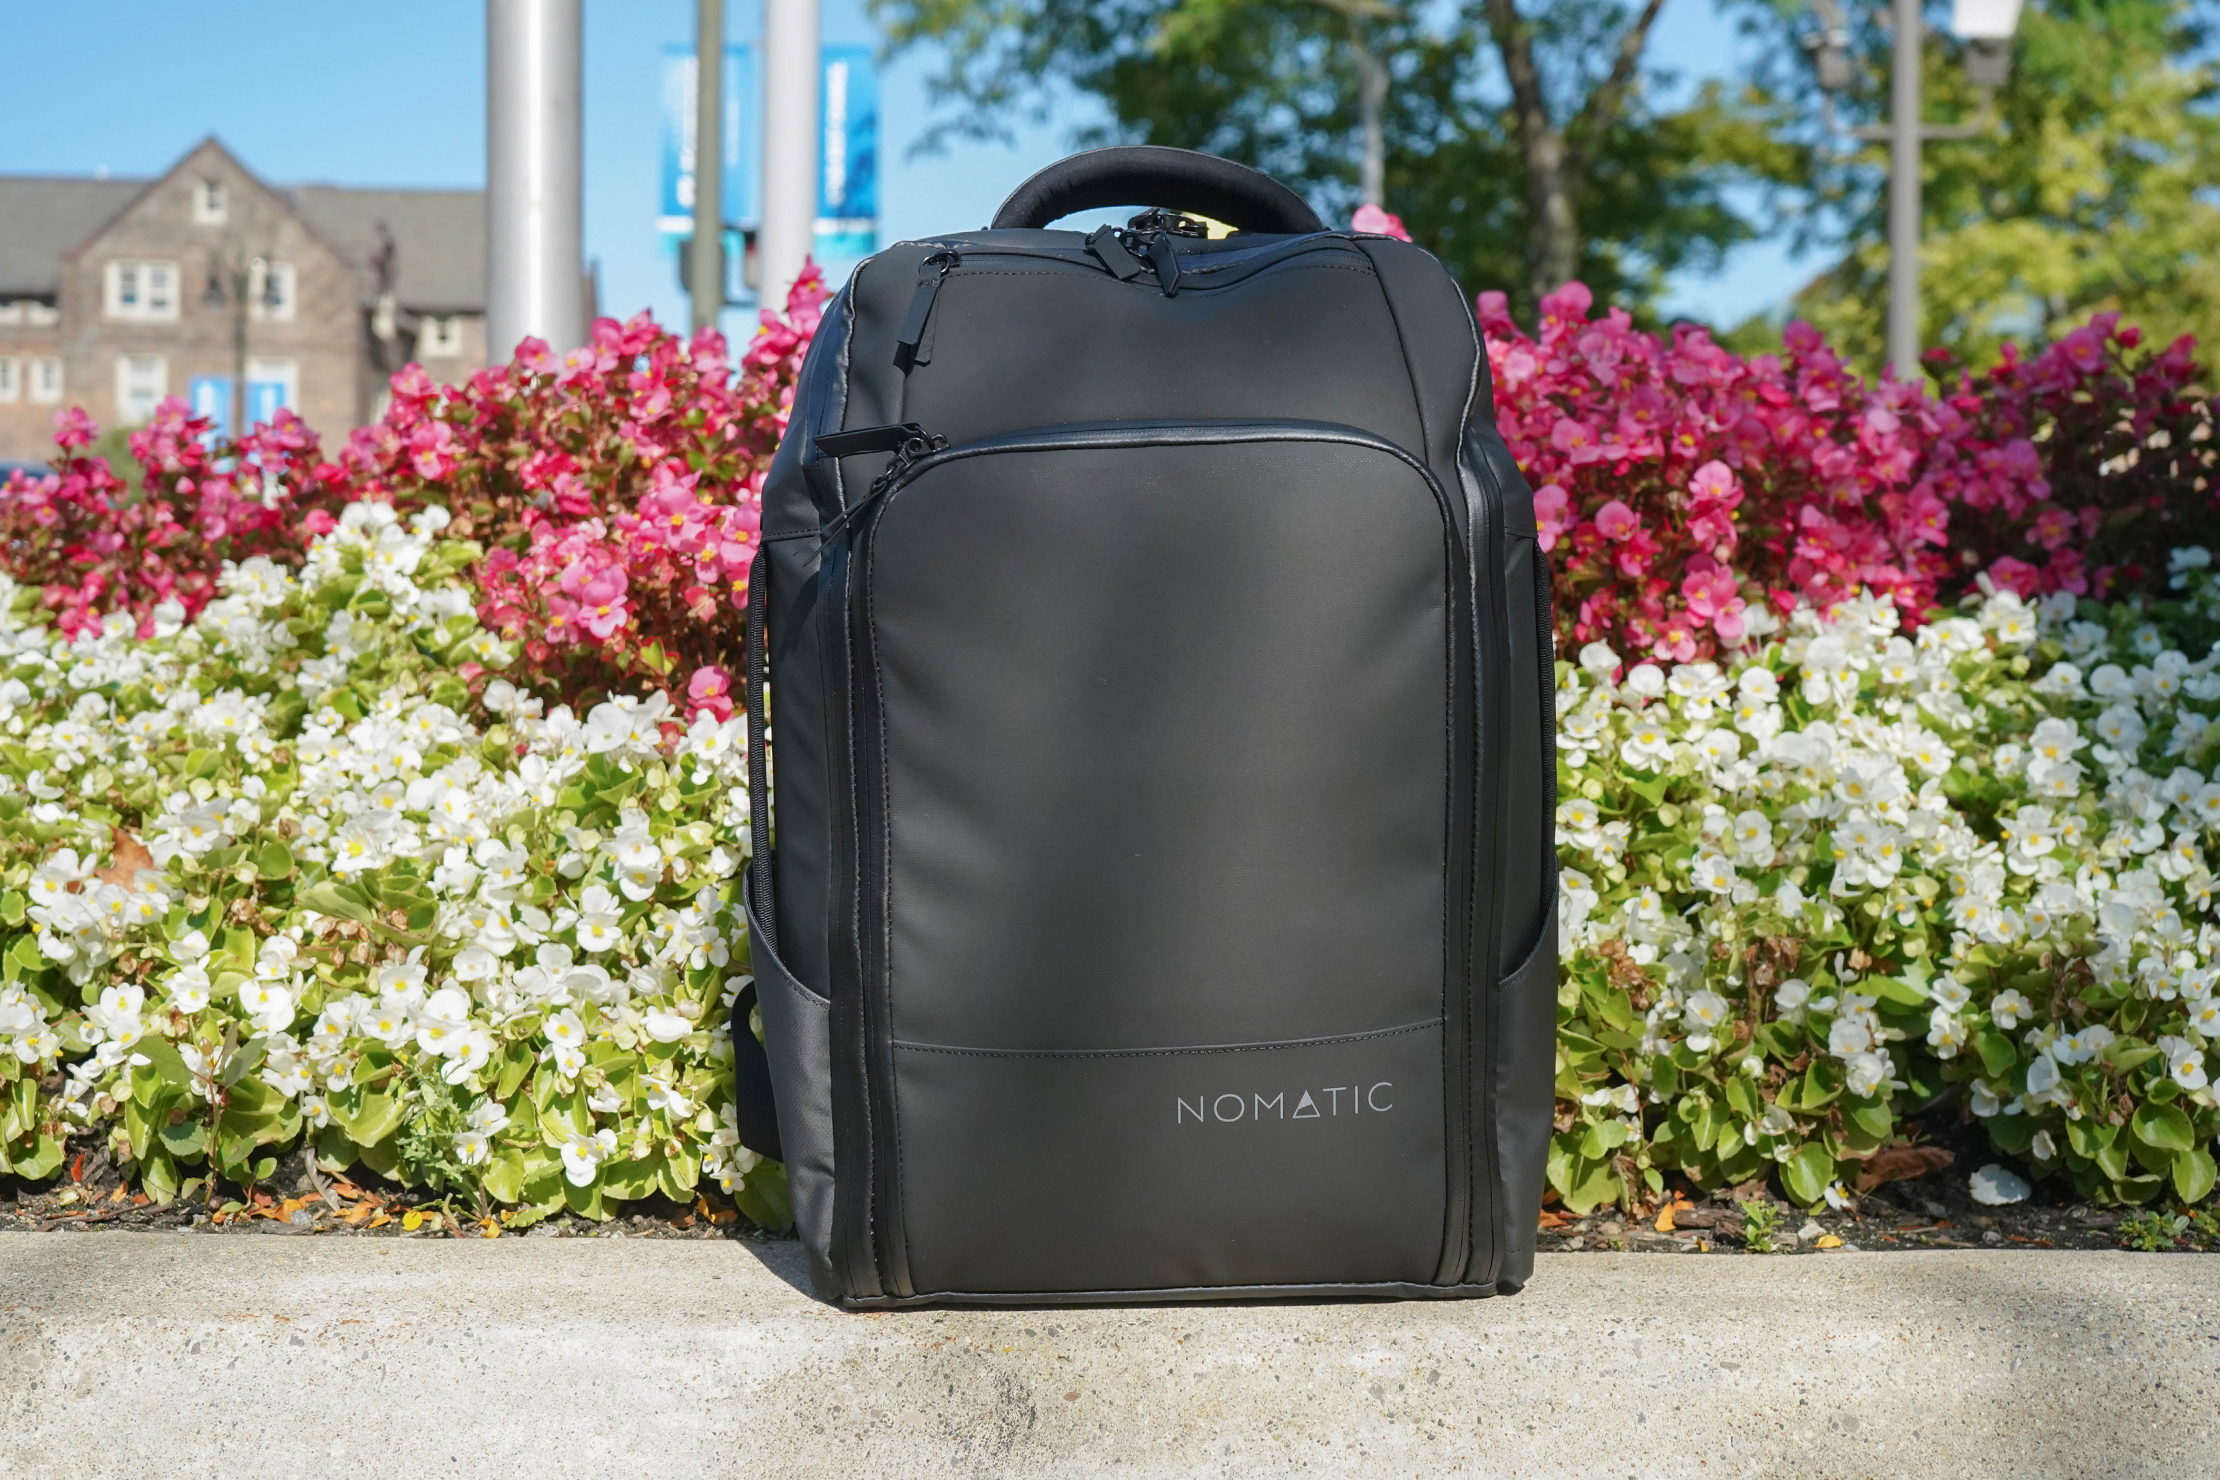 NOMATIC Travel Pack Standing Up